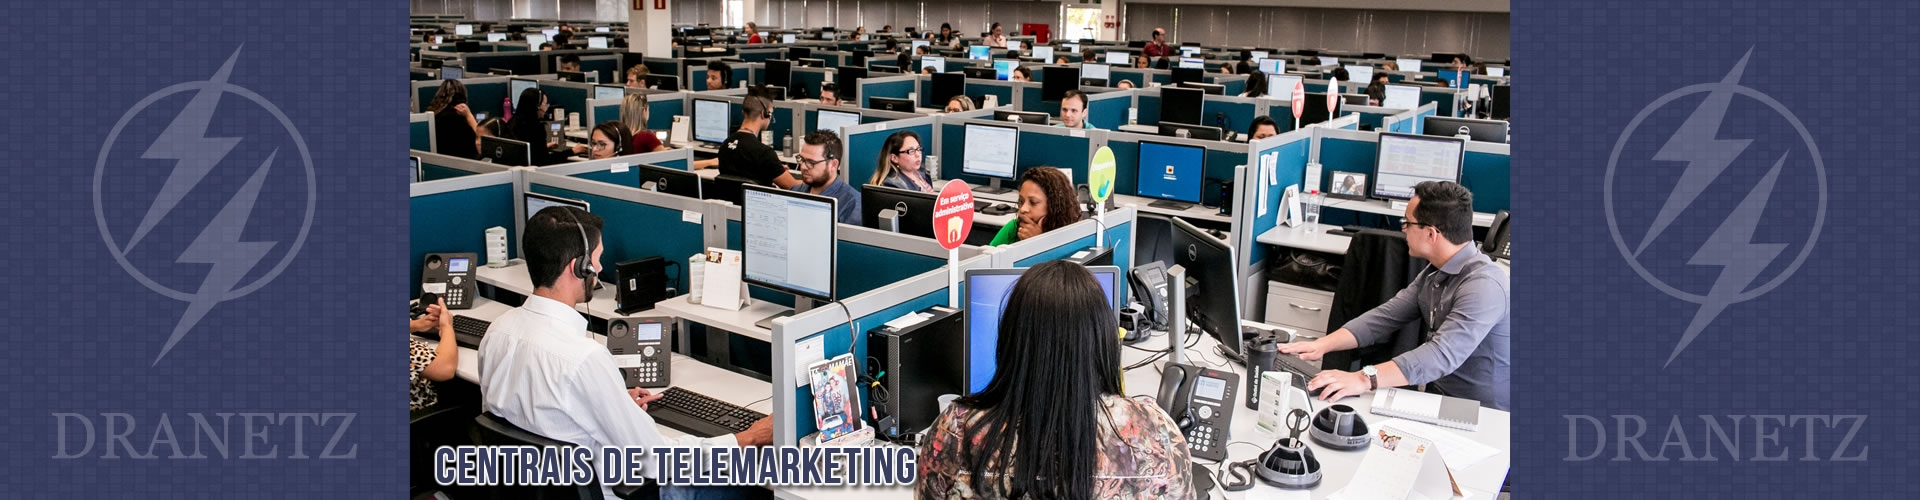 Estabilizadores e Nobreaks para empresas de Telemarketing, Call Center e Data Center